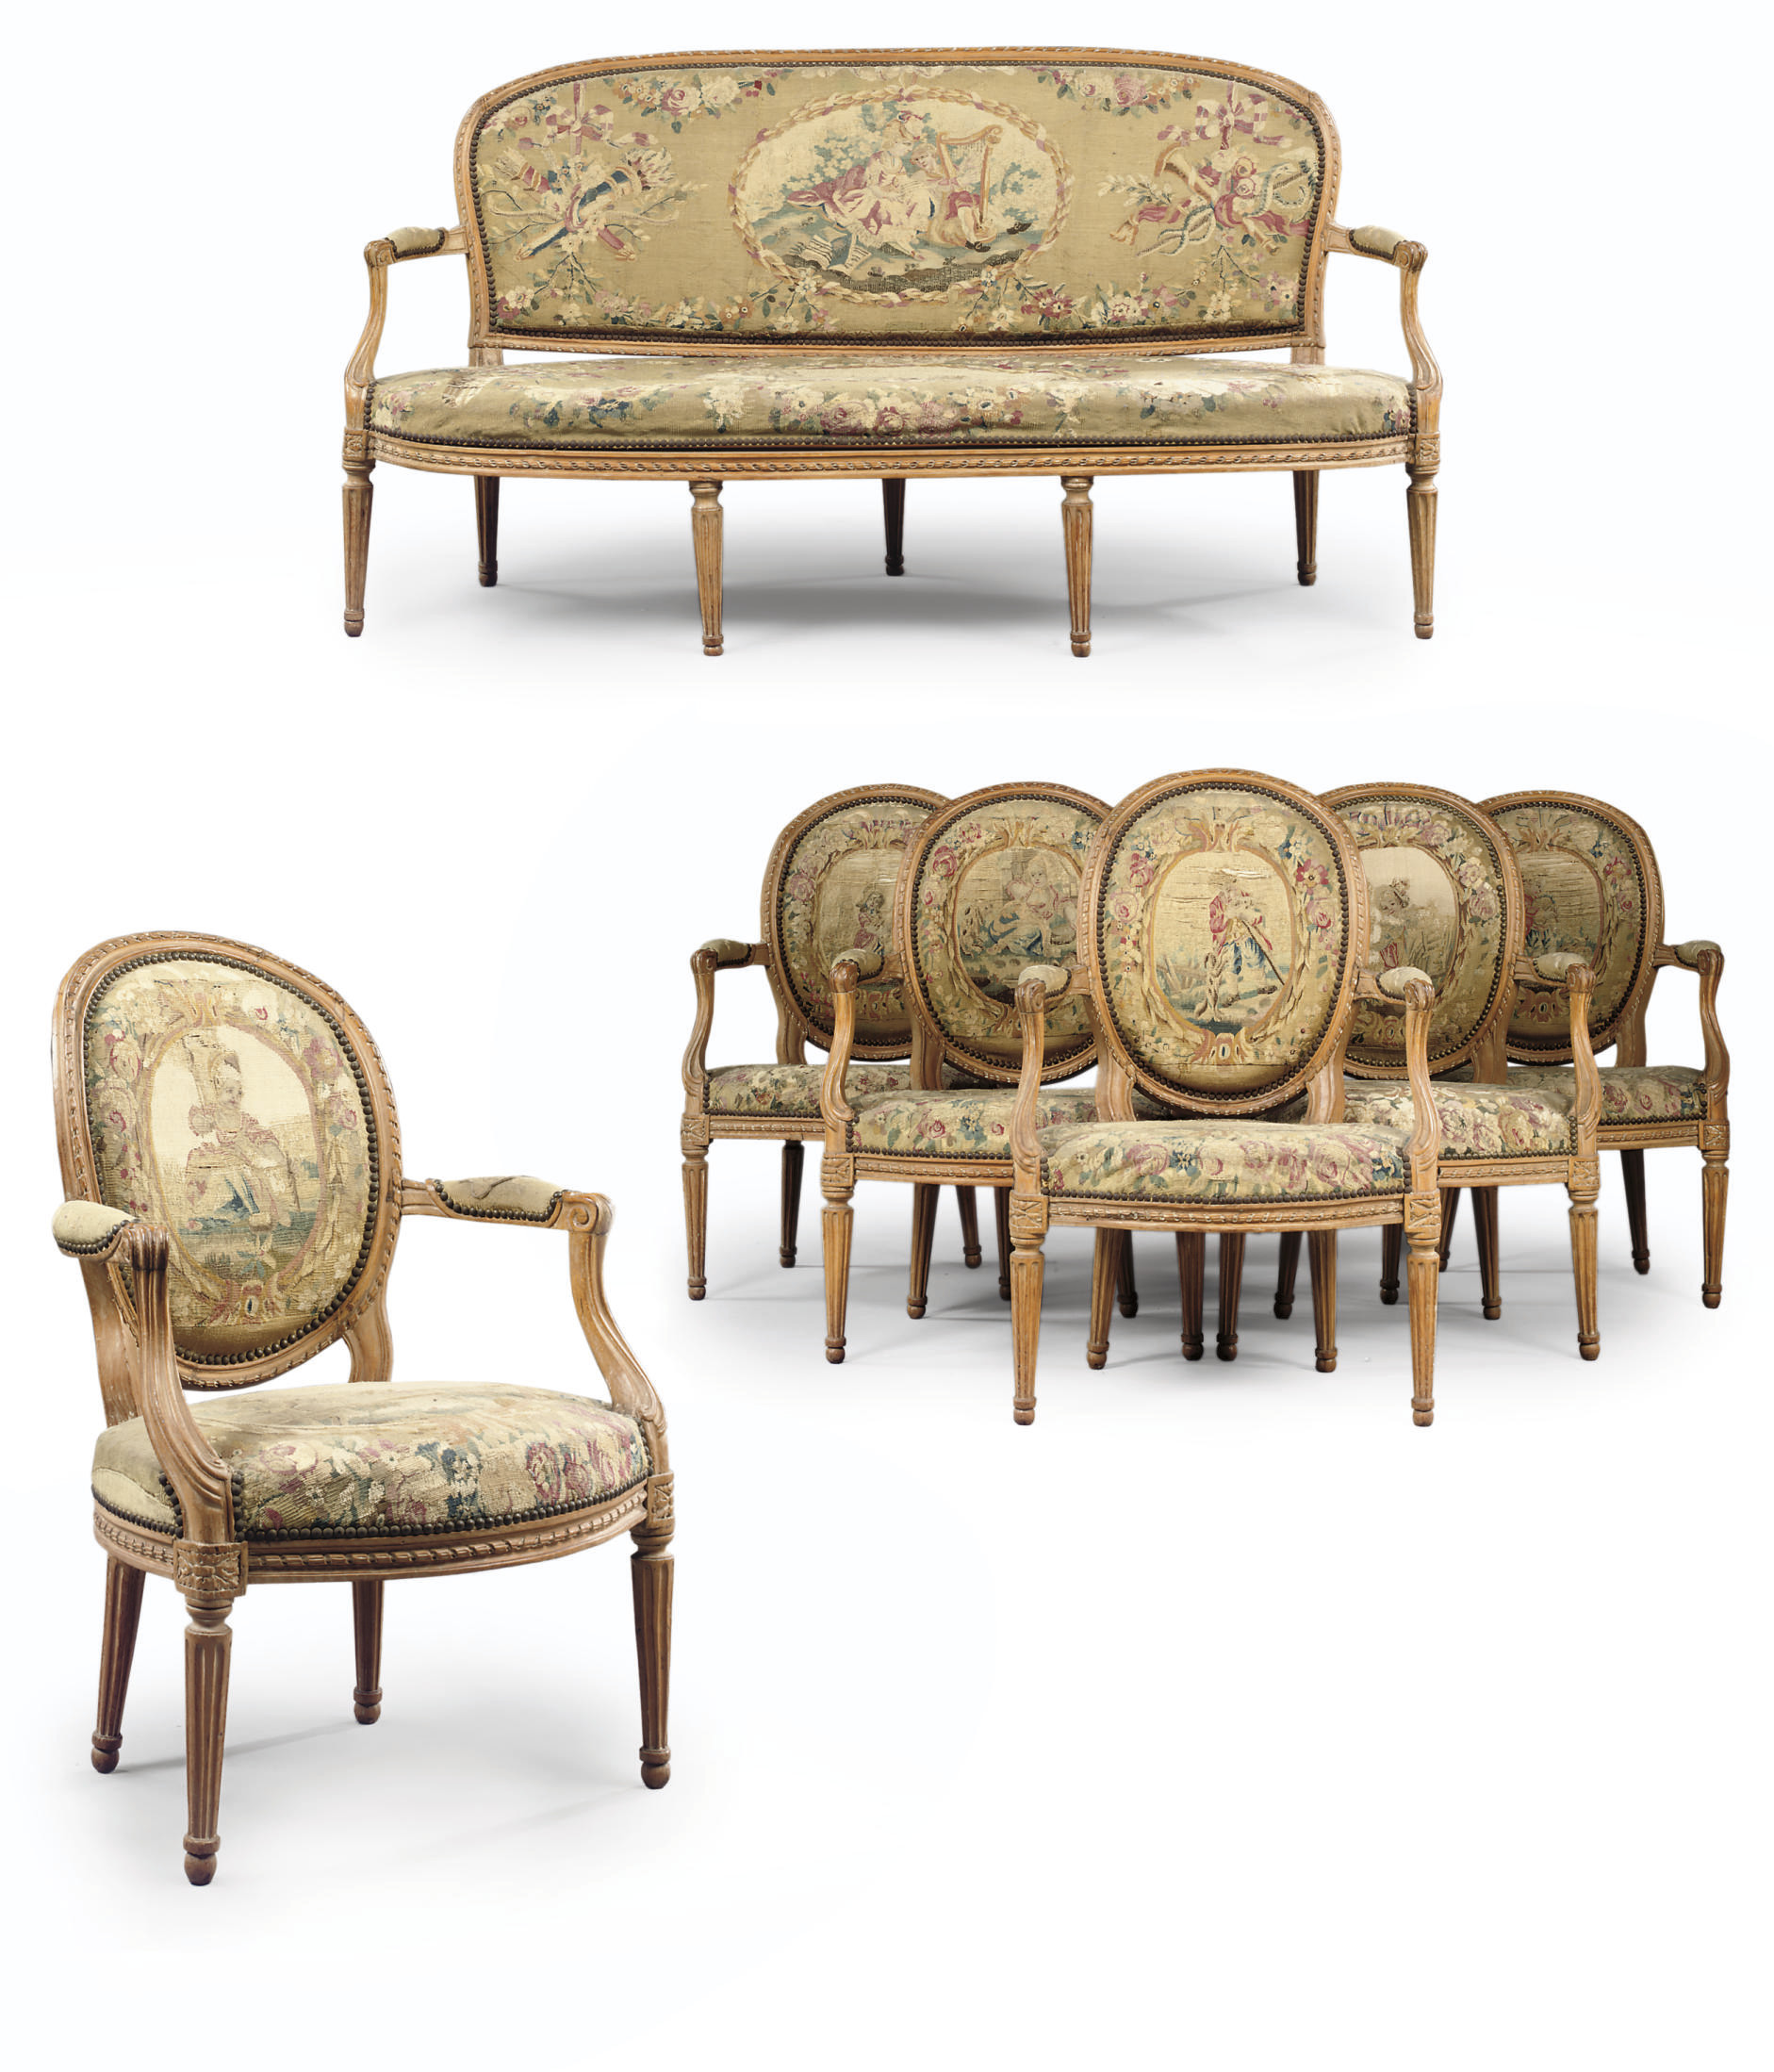 A SUITE OF LOUIS XVI BEECHWOOD AND AUBUSSON TAPESTRY SEAT-FURNITURE